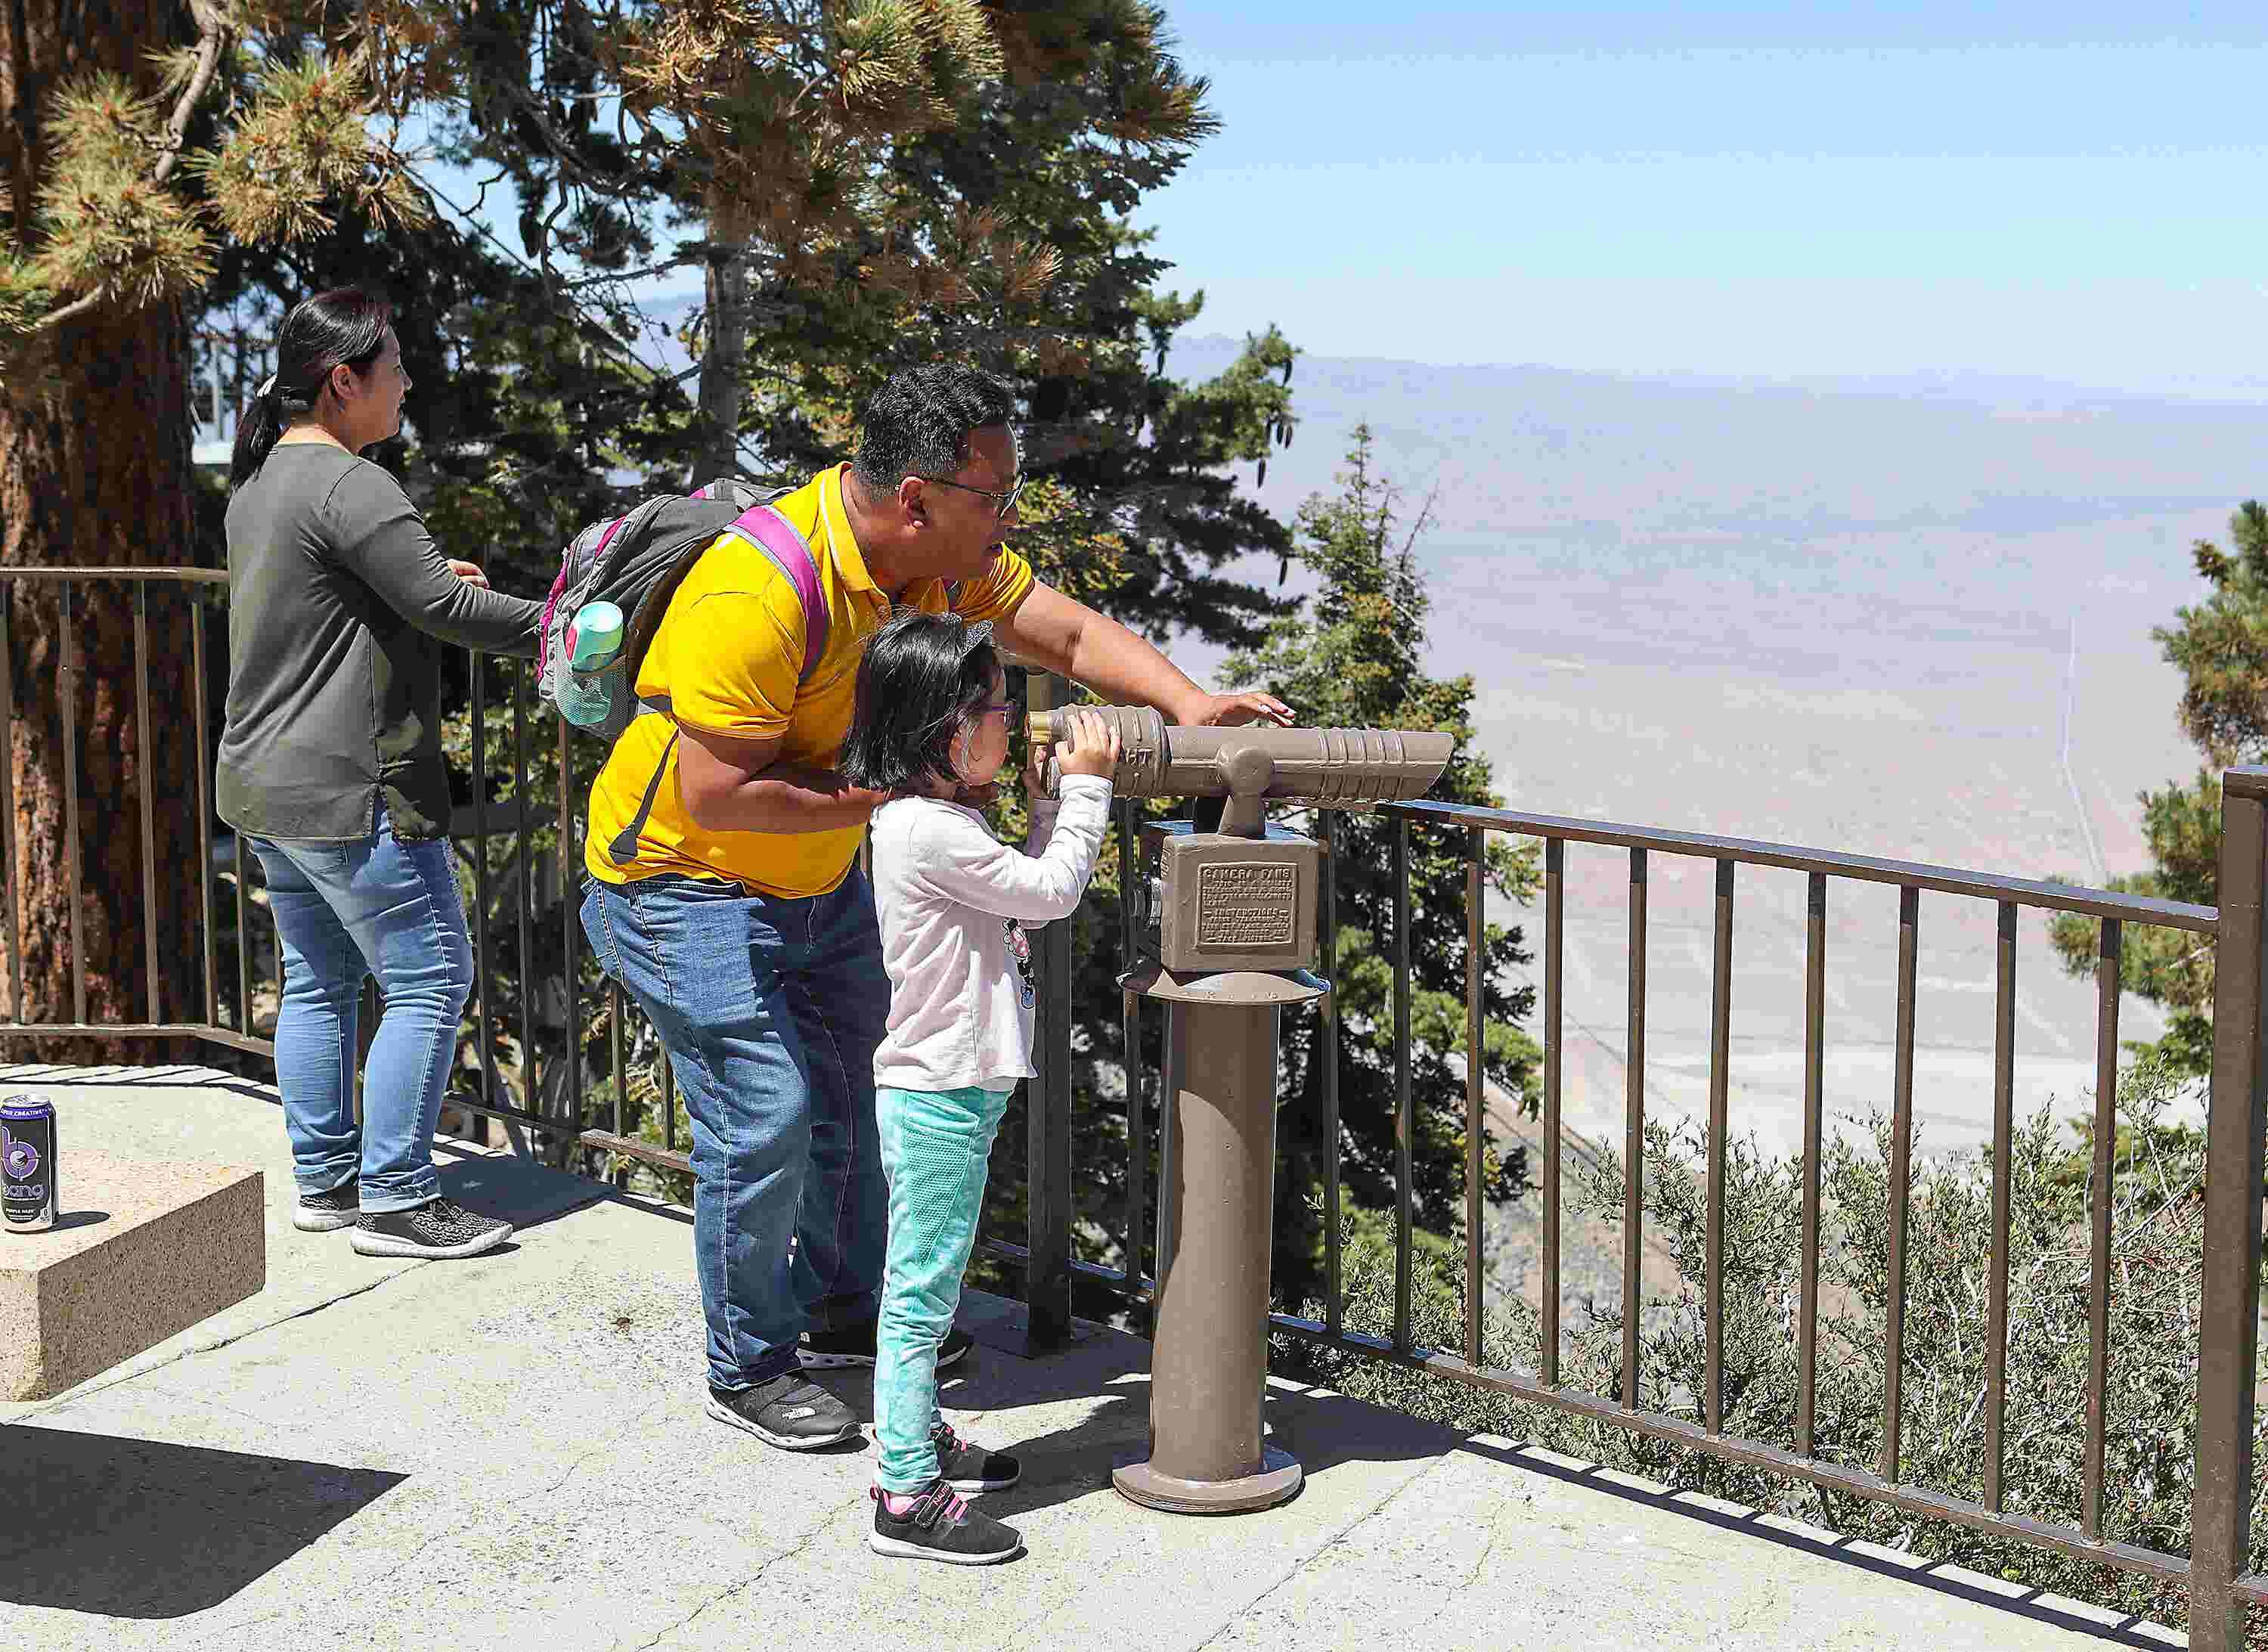 Major upgrades coming to Palm Springs Aerial Tramway's mountain station